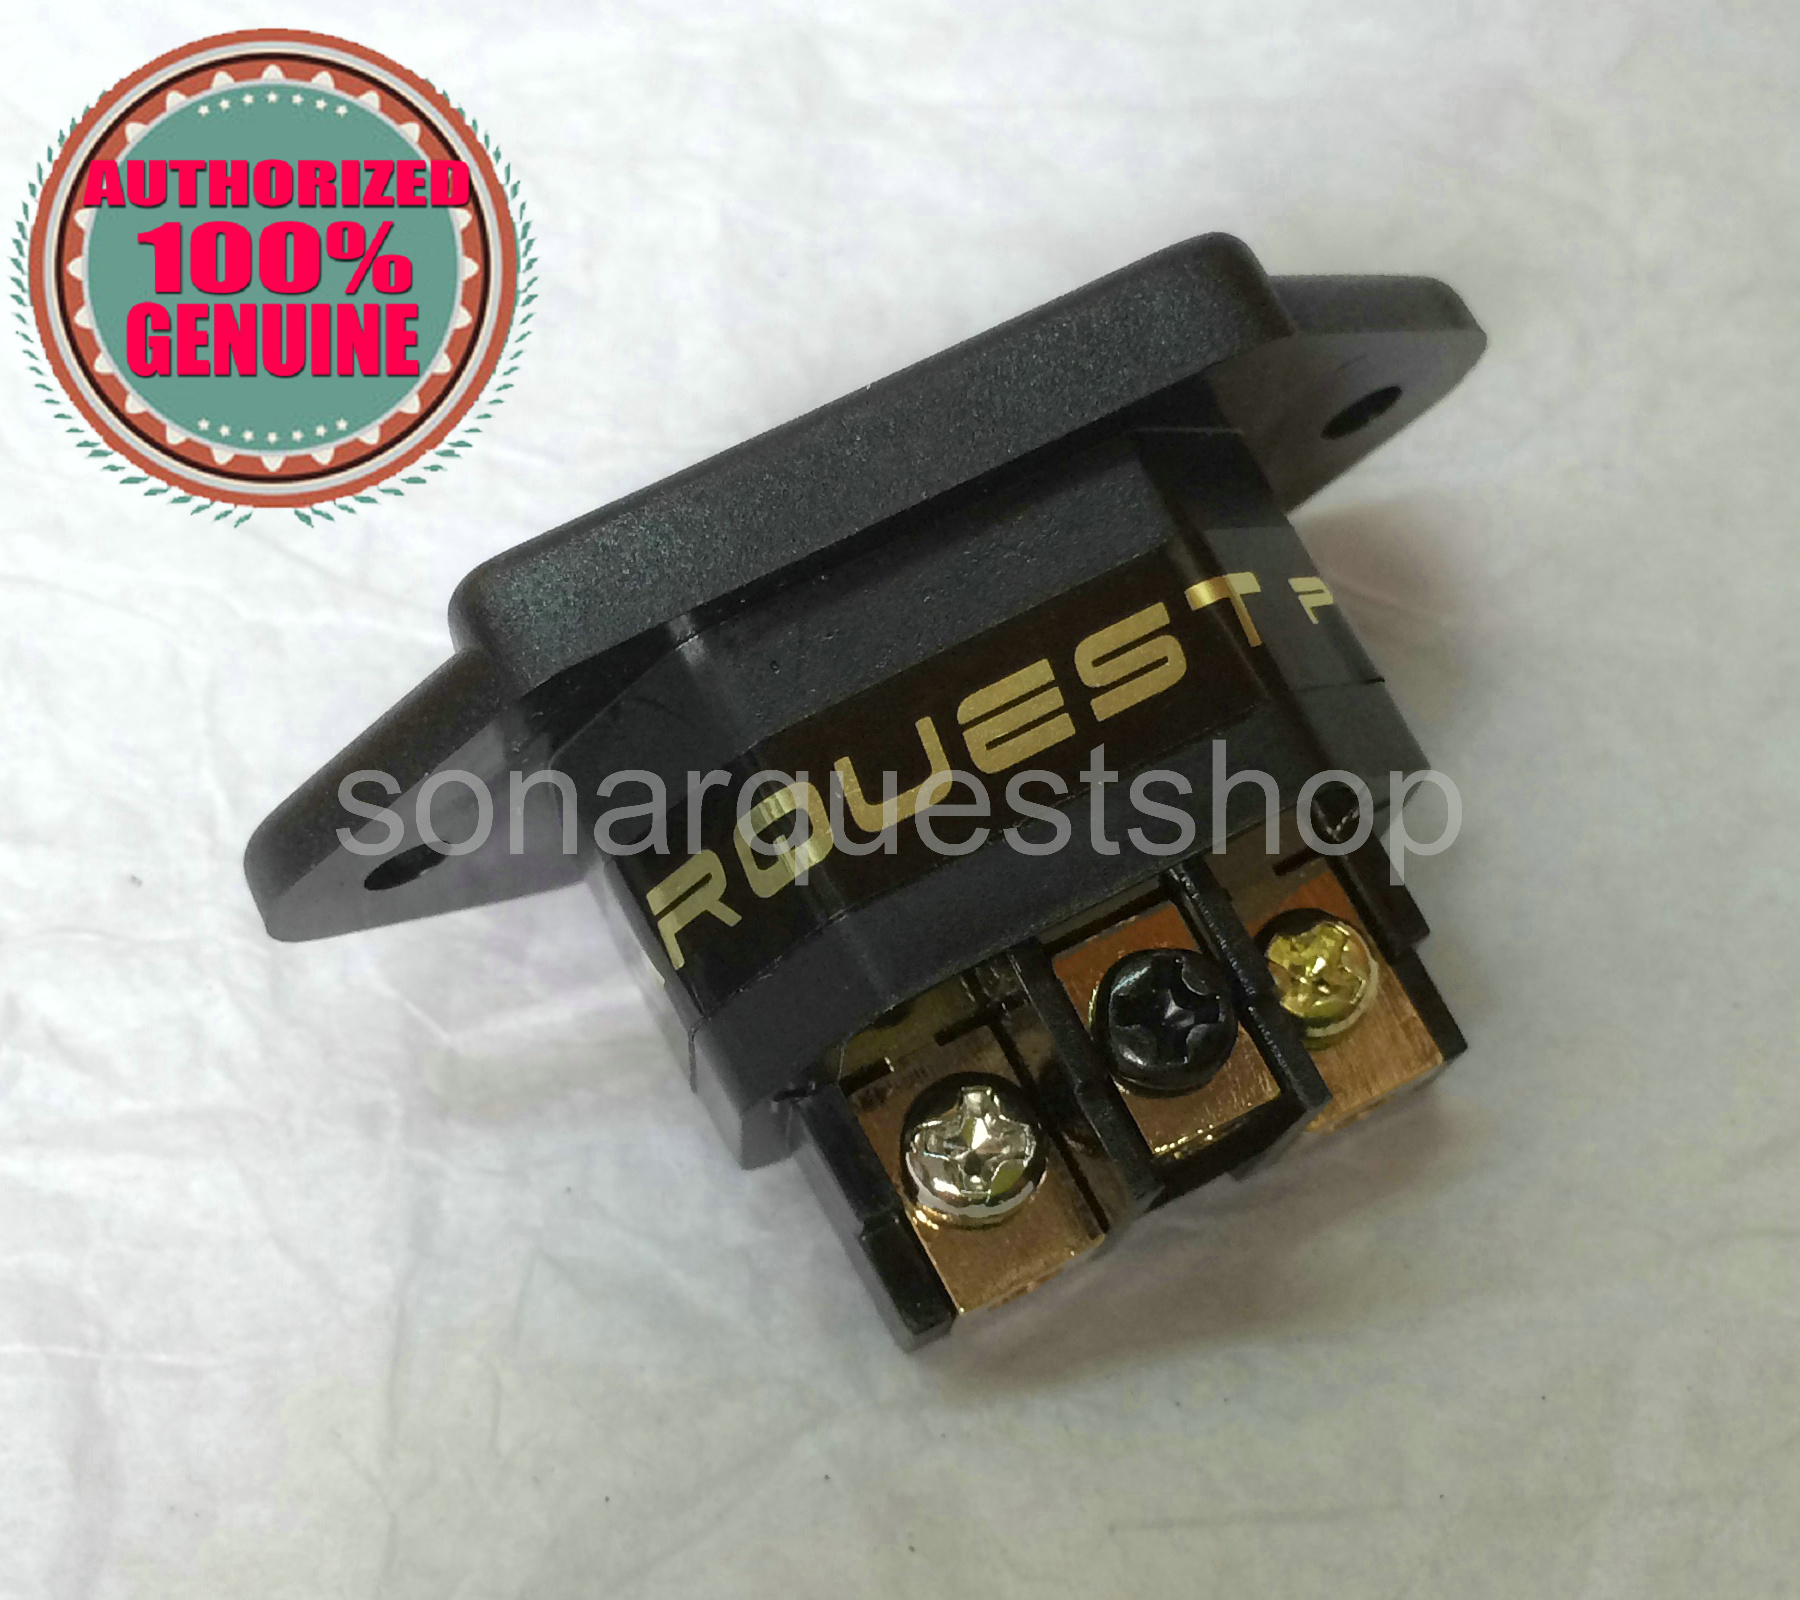 SONARQUEST For Audio 24K Gold Plated IEC AC Inlet, Socket Power no Fuse